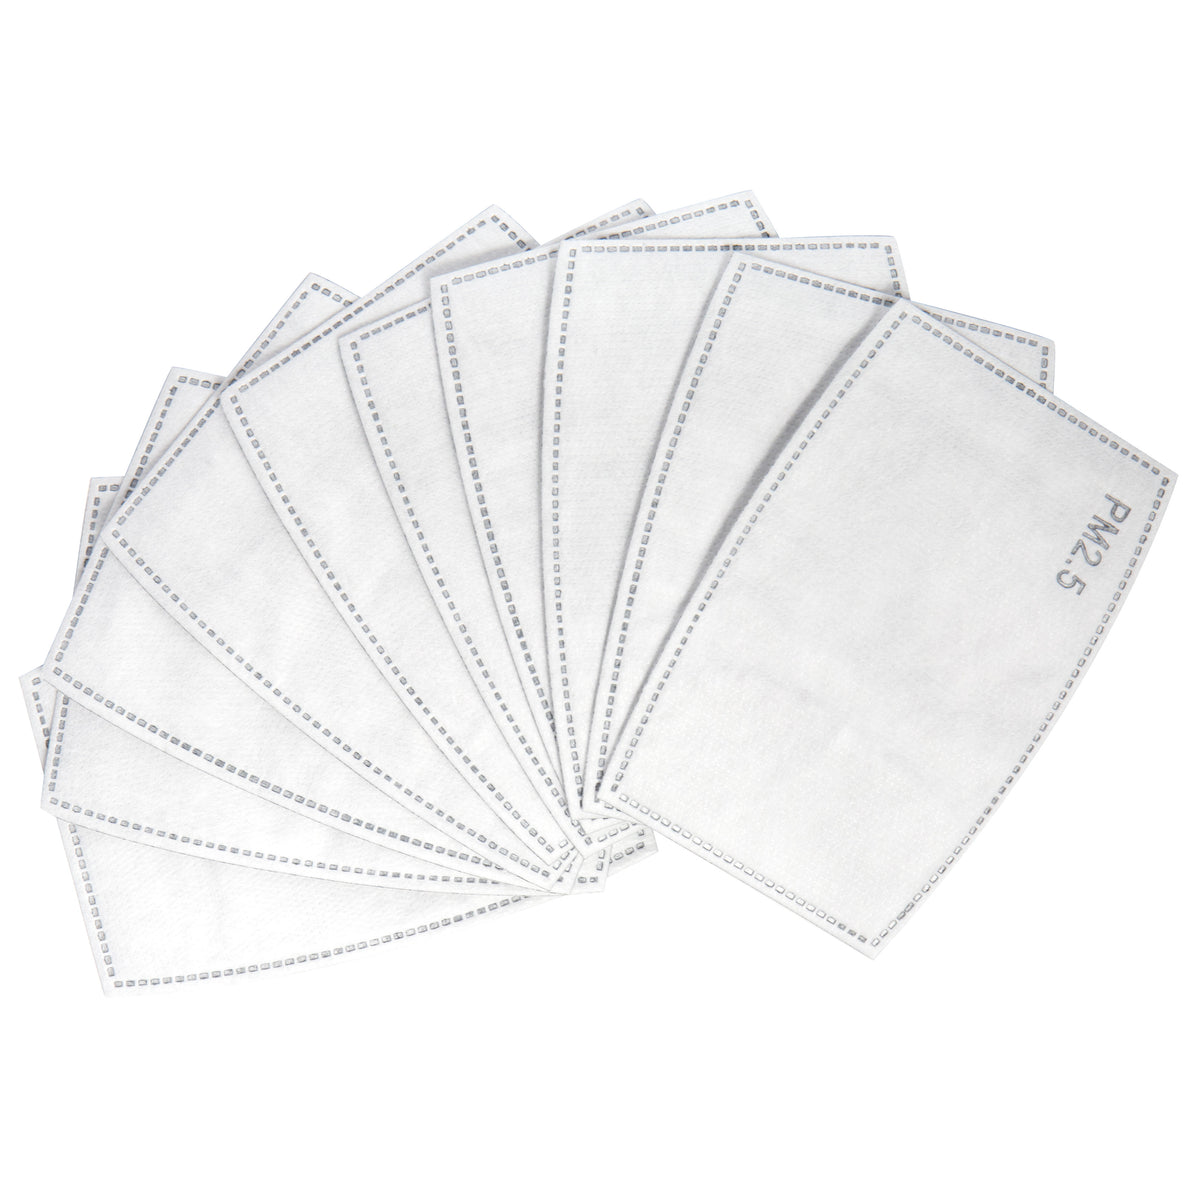 Jet Black Filter Replacements for Artist Masks - 10 pcs